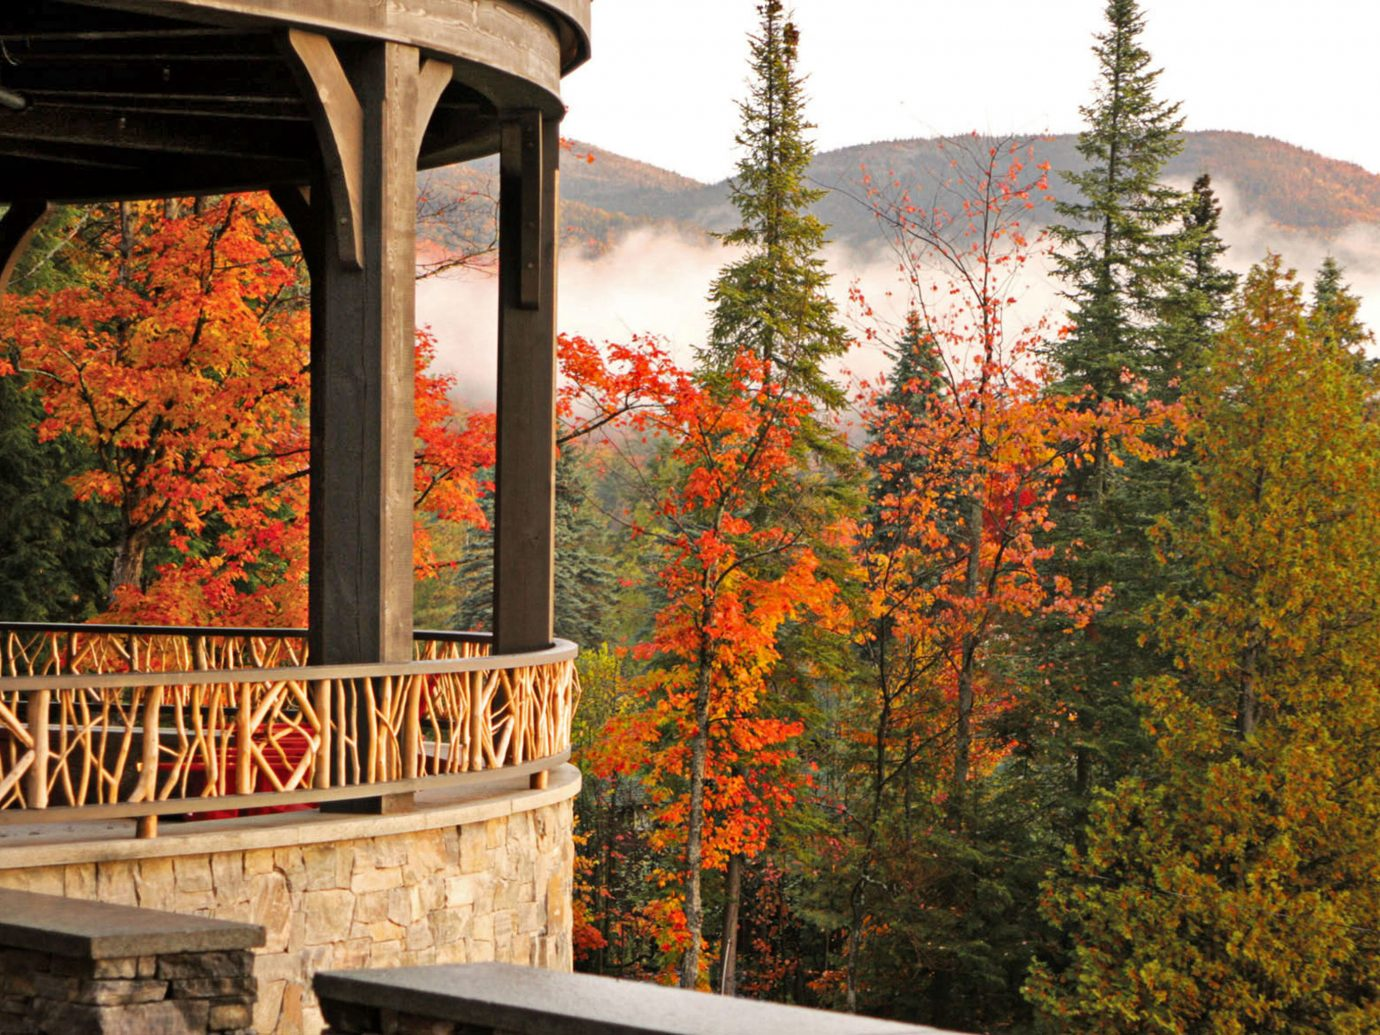 Balcony Boutique Hotels Hotels Lake Lodge Outdoors + Adventure Rustic Scenic views Trip Ideas Waterfront Weekend Getaways tree outdoor building autumn season leaf flower bridge home Garden stone